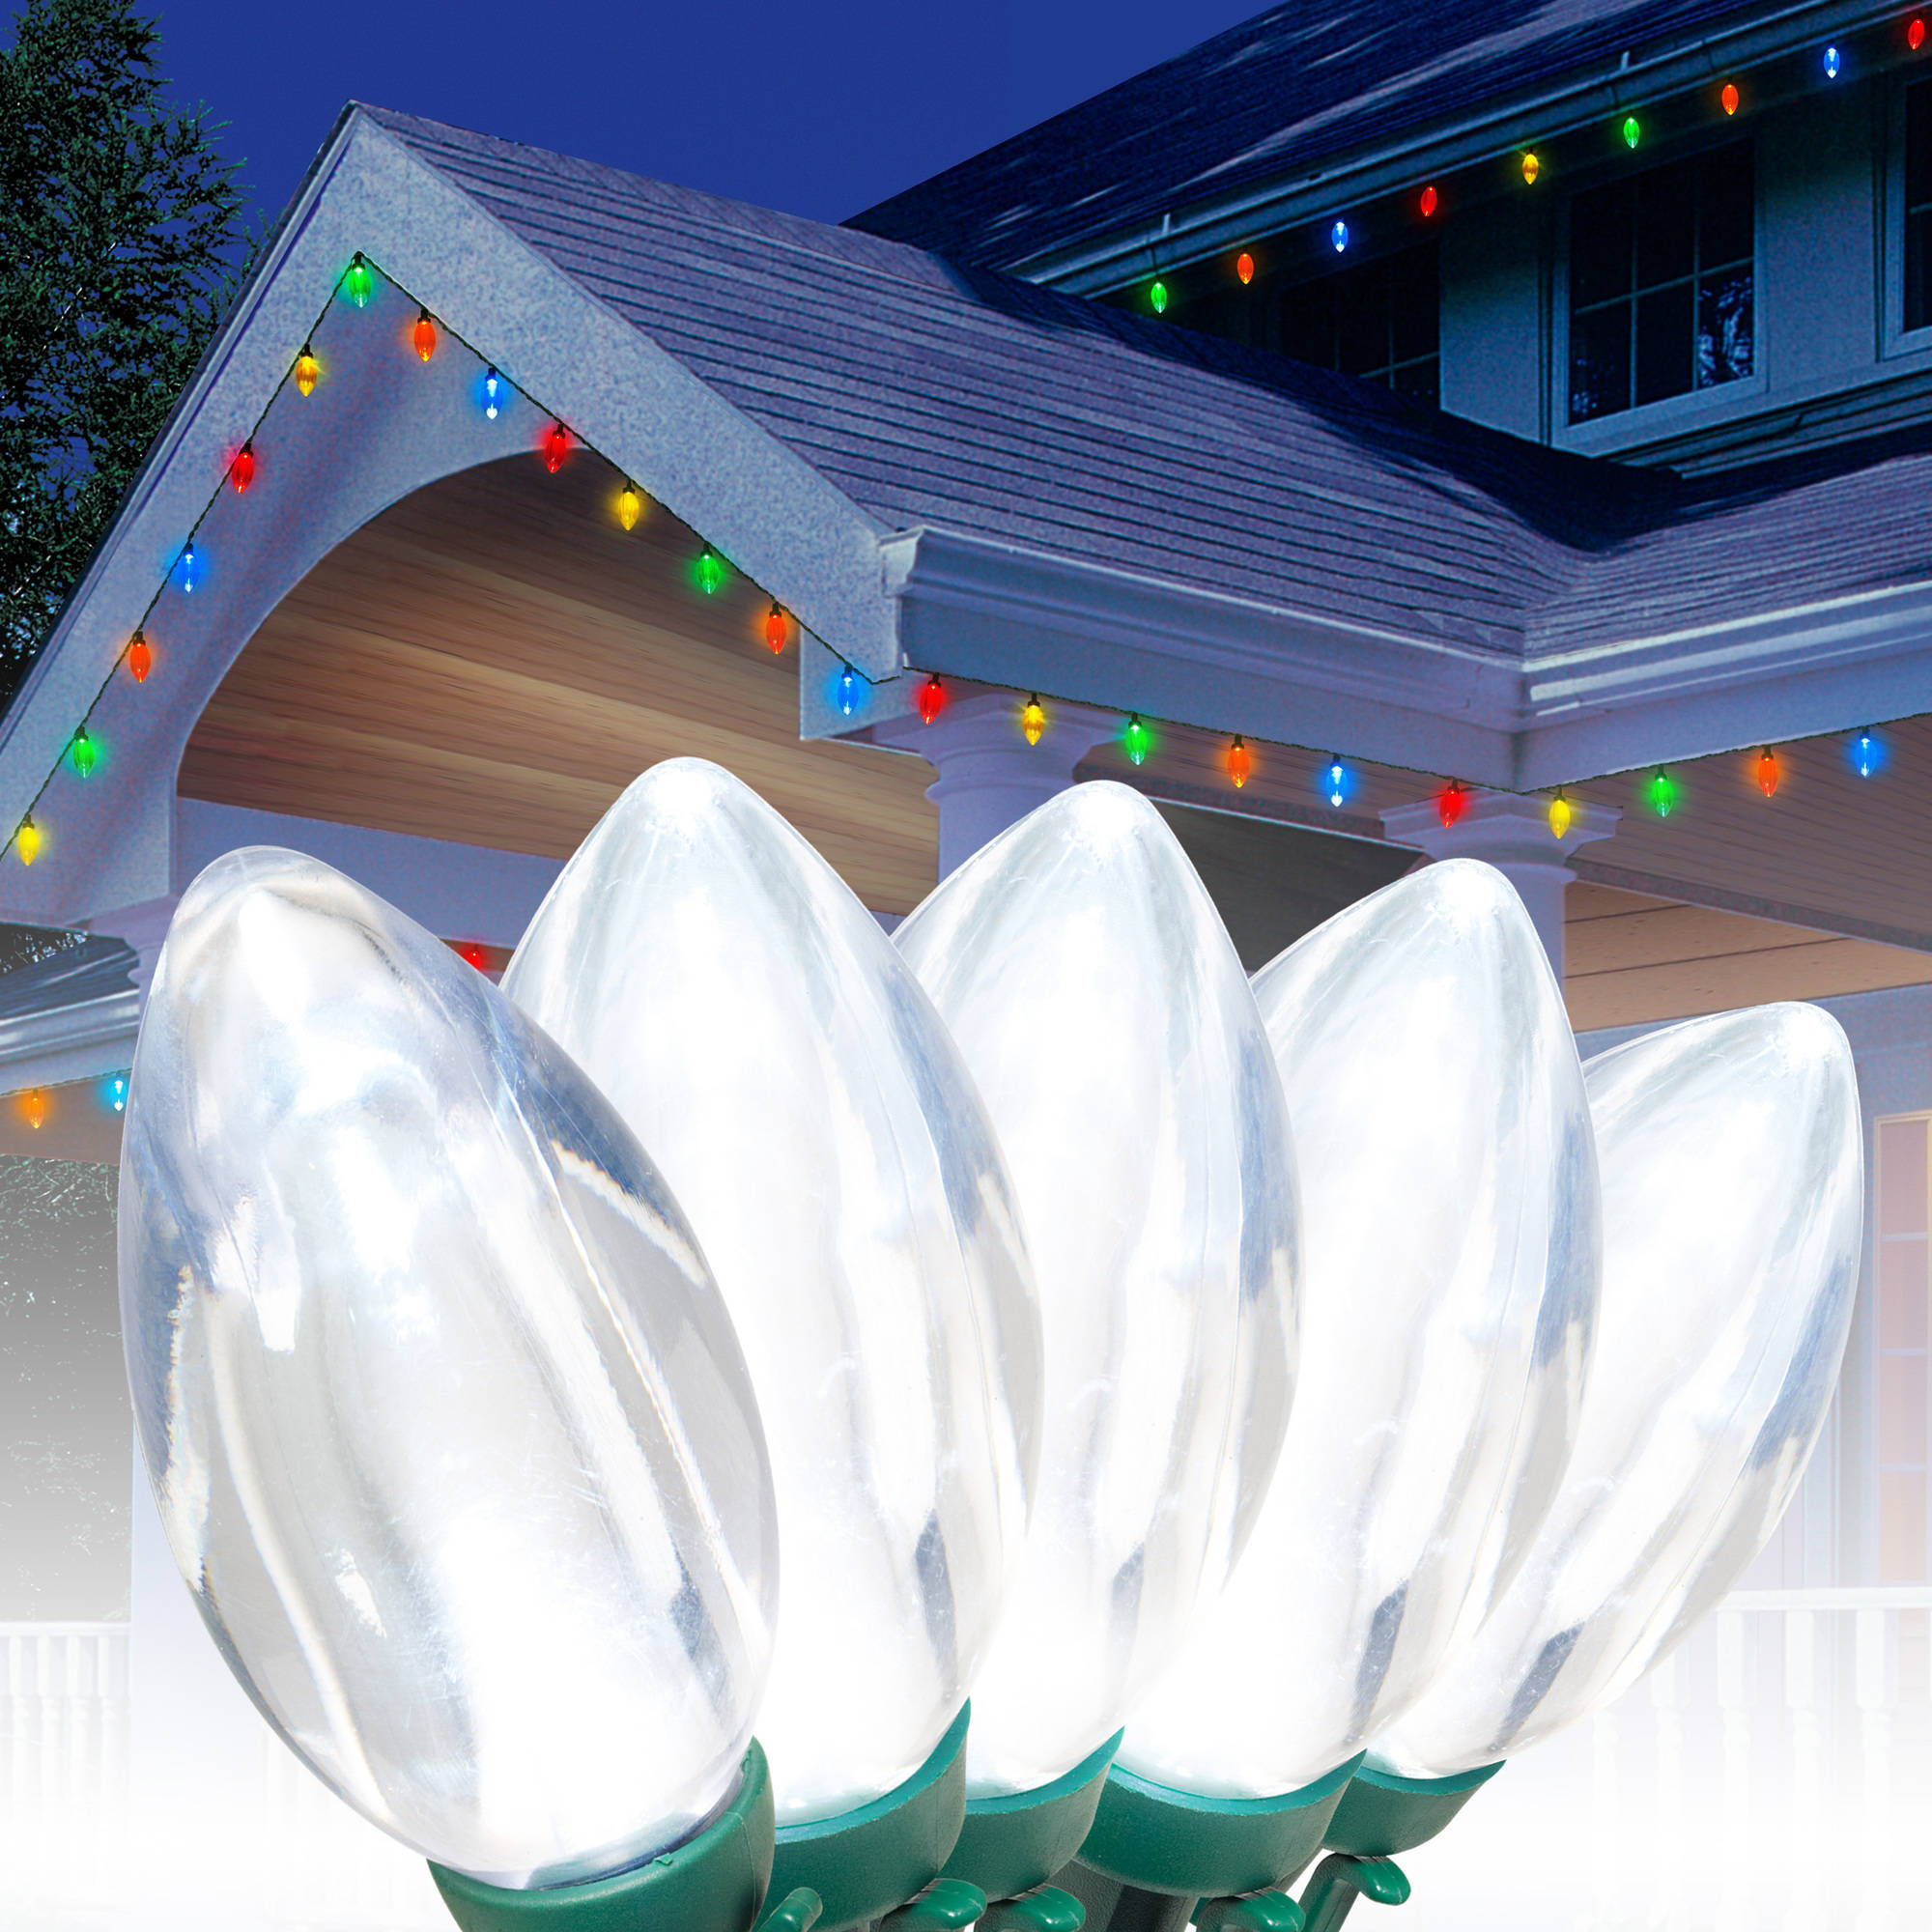 Holiday Time LED C9 Ultra Bright Light Set Green Wire Cool White Bulbs, 25 Count - Walmart.com